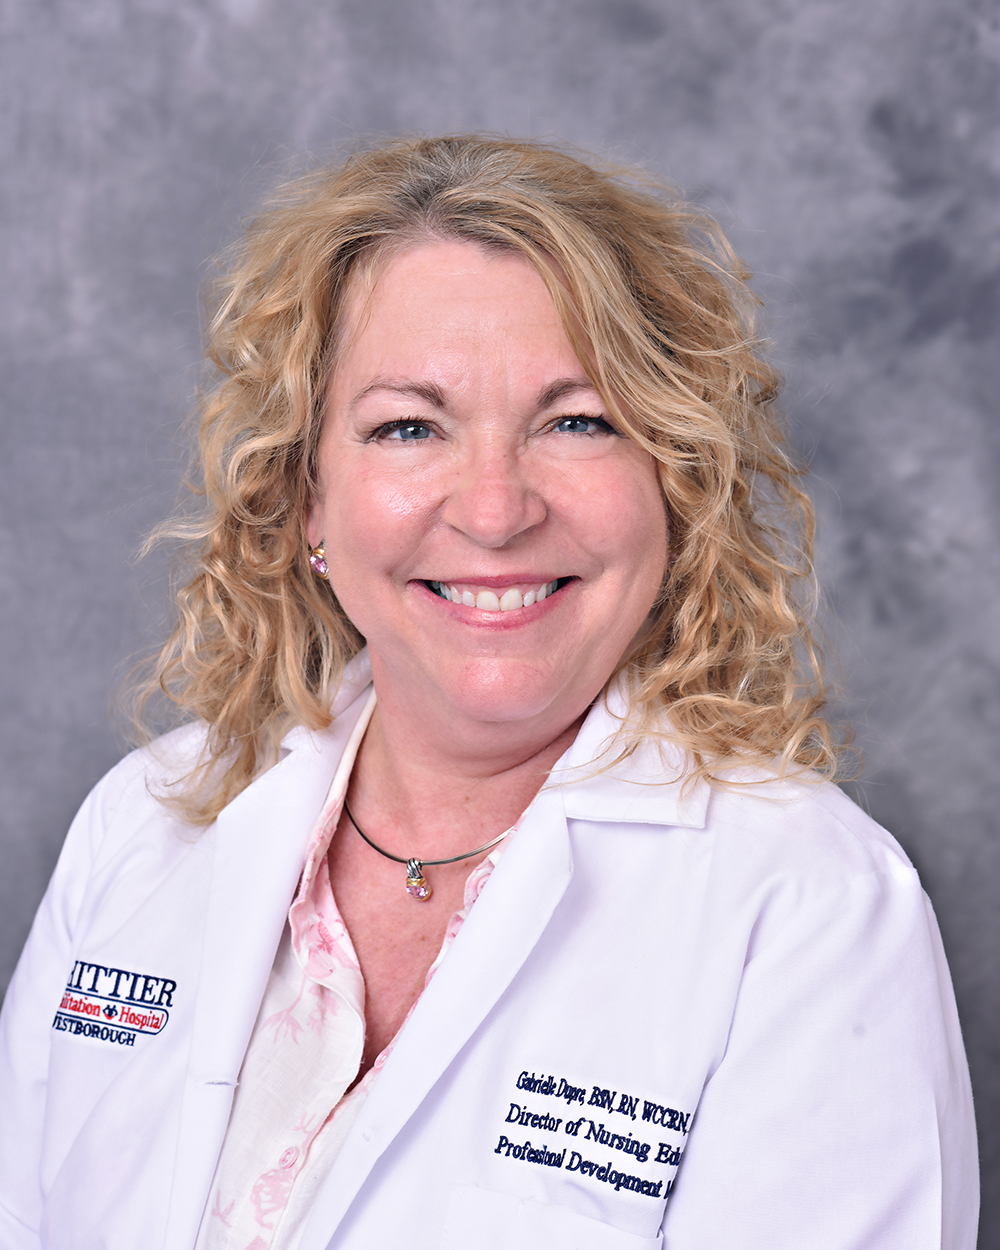 Gabrielle Dupre, BSN, RN, WCCRN, Director of Nursing Education